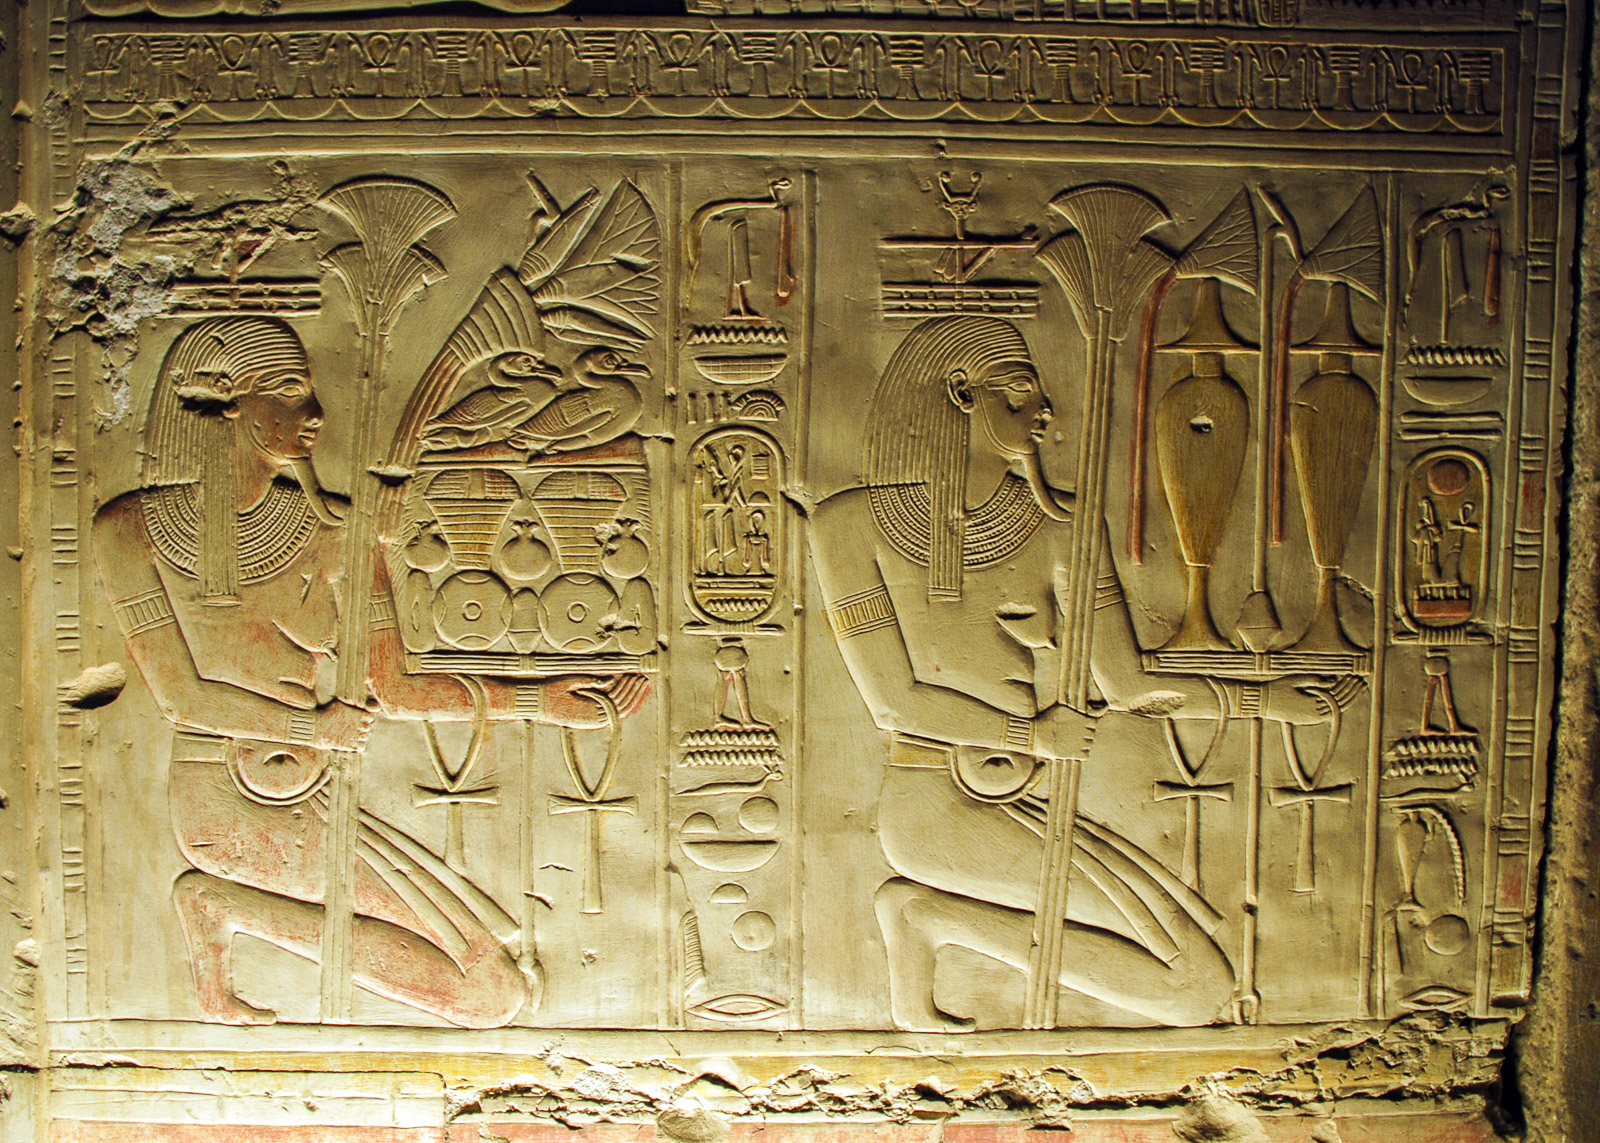 Abydos: Visit an underrated jewel in the Nile Valley